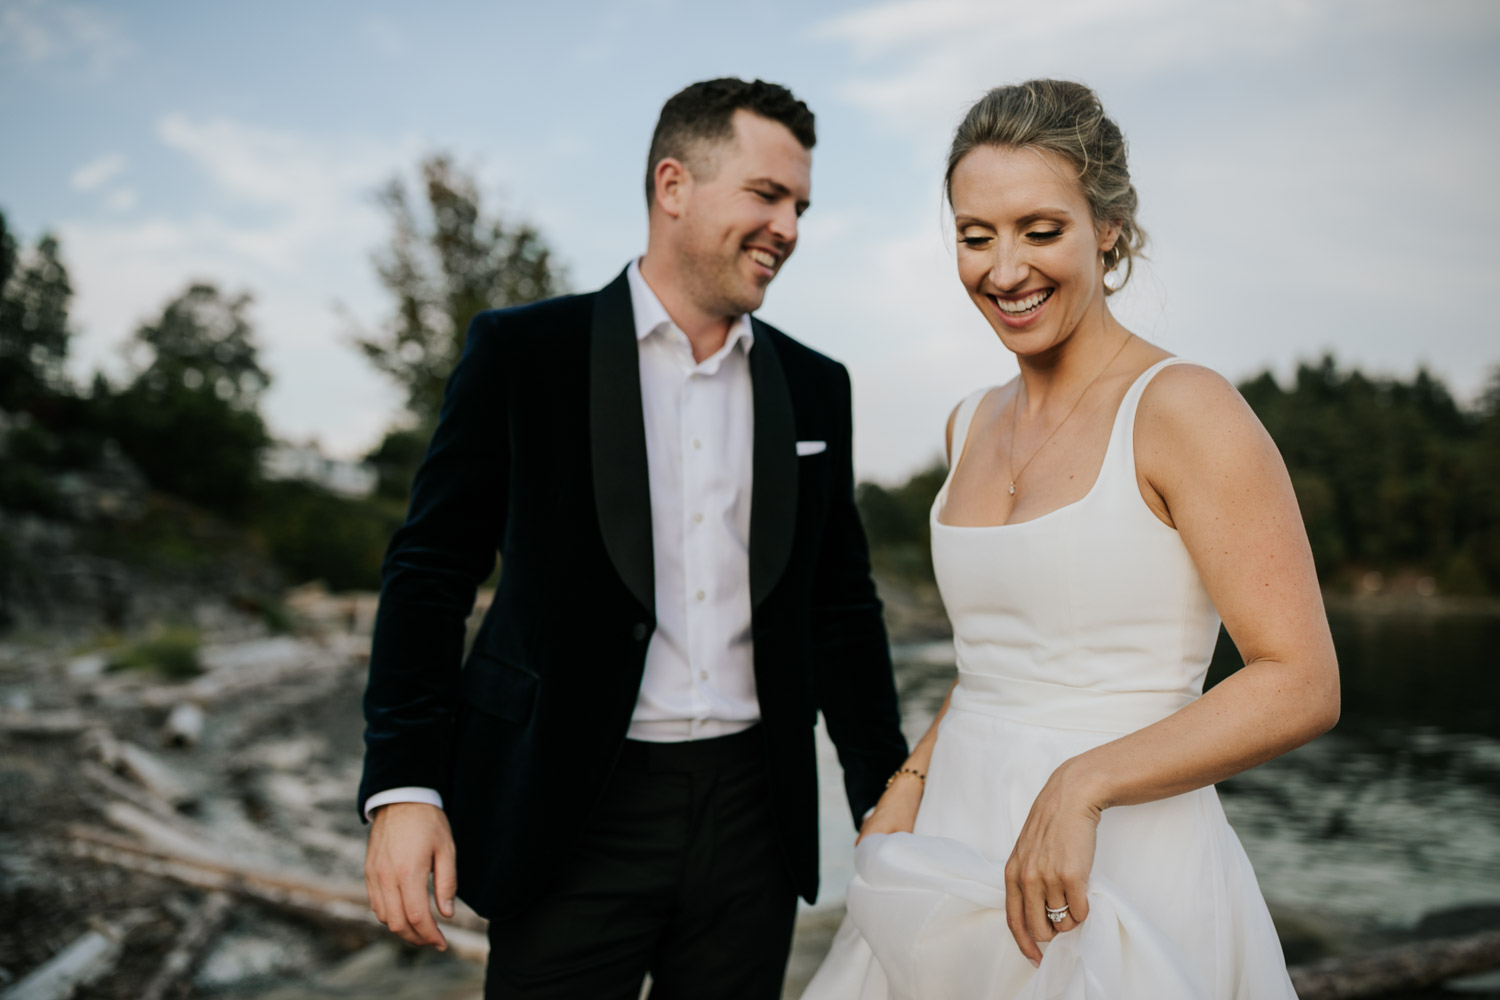 Photojournalistic Vancouver Island Wedding Photographer captures intimate beach wedding on Vancouver Island at beautiful venue and location with sea and mountain views